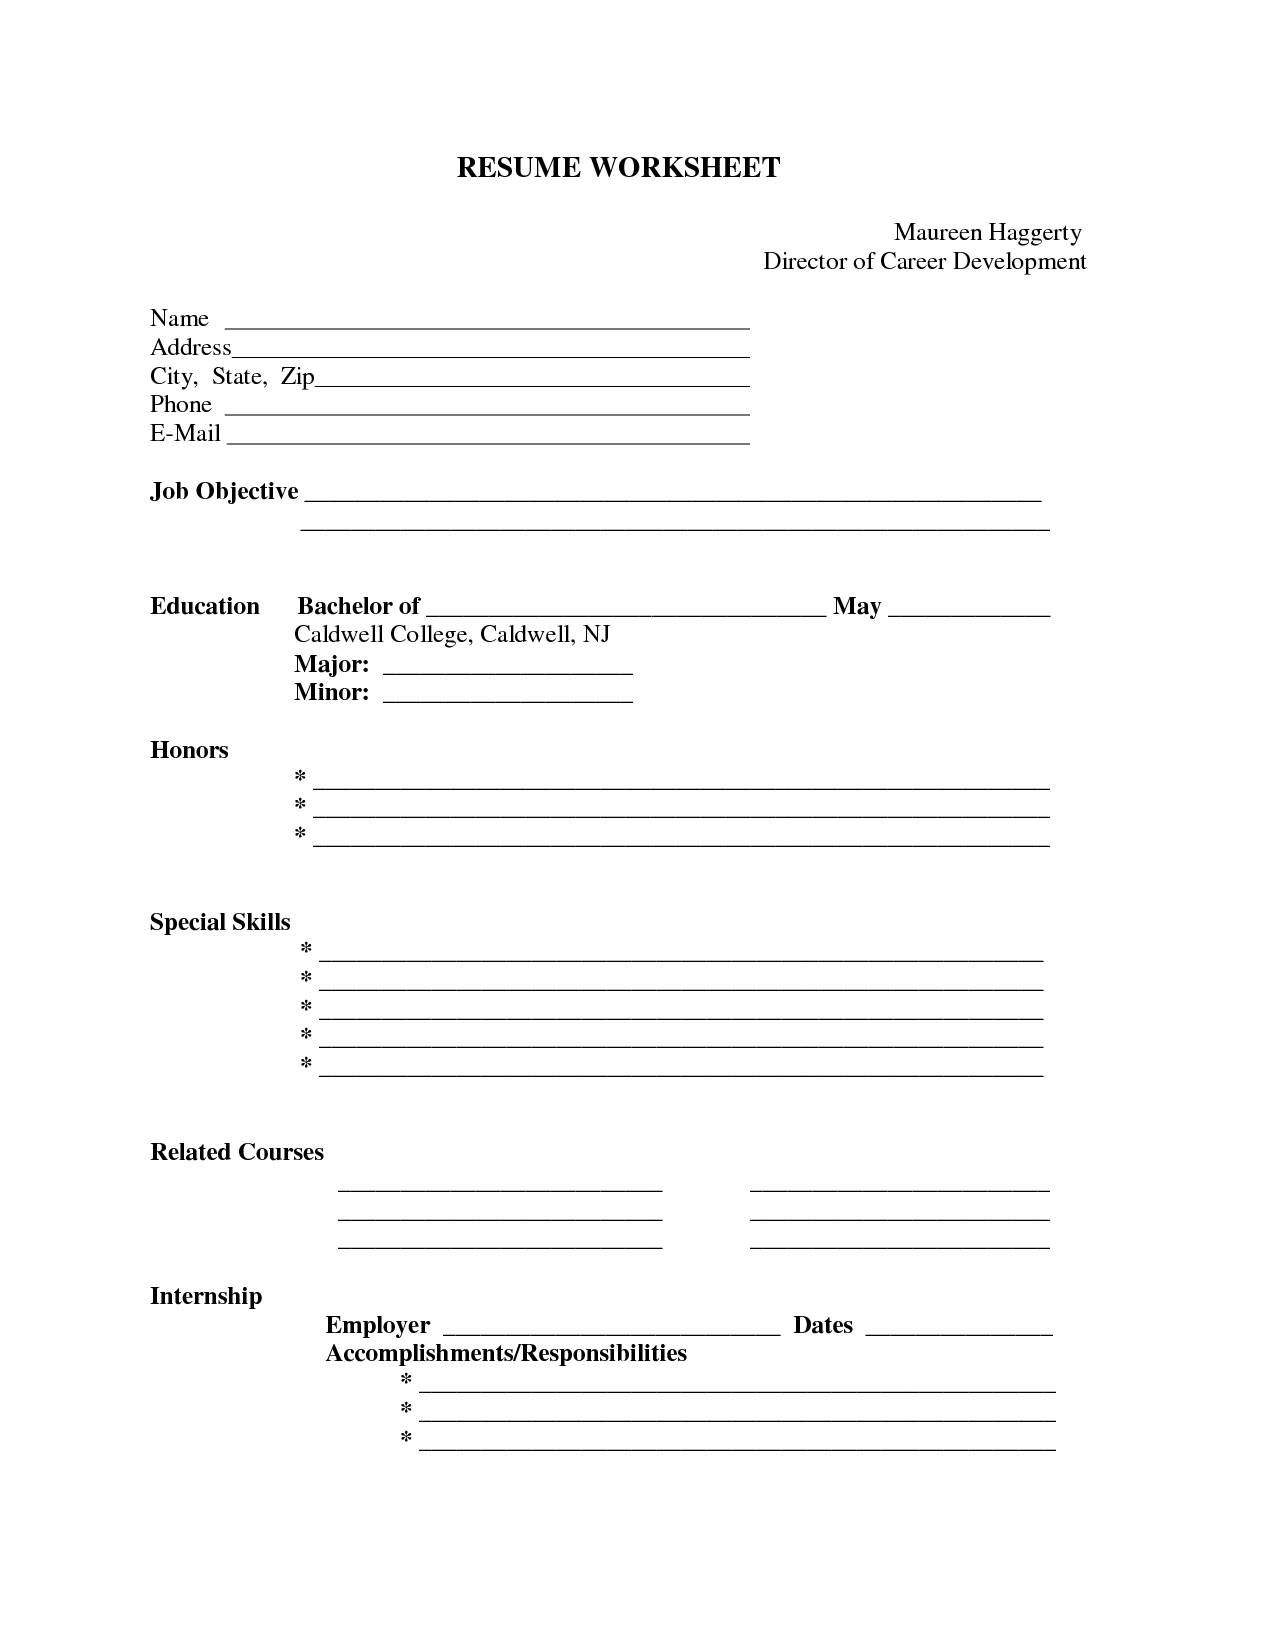 Free Resume Builder For High School Students Templates And Print Online  Maker Template Student Blank Ideas Example  Blank Resume Templates